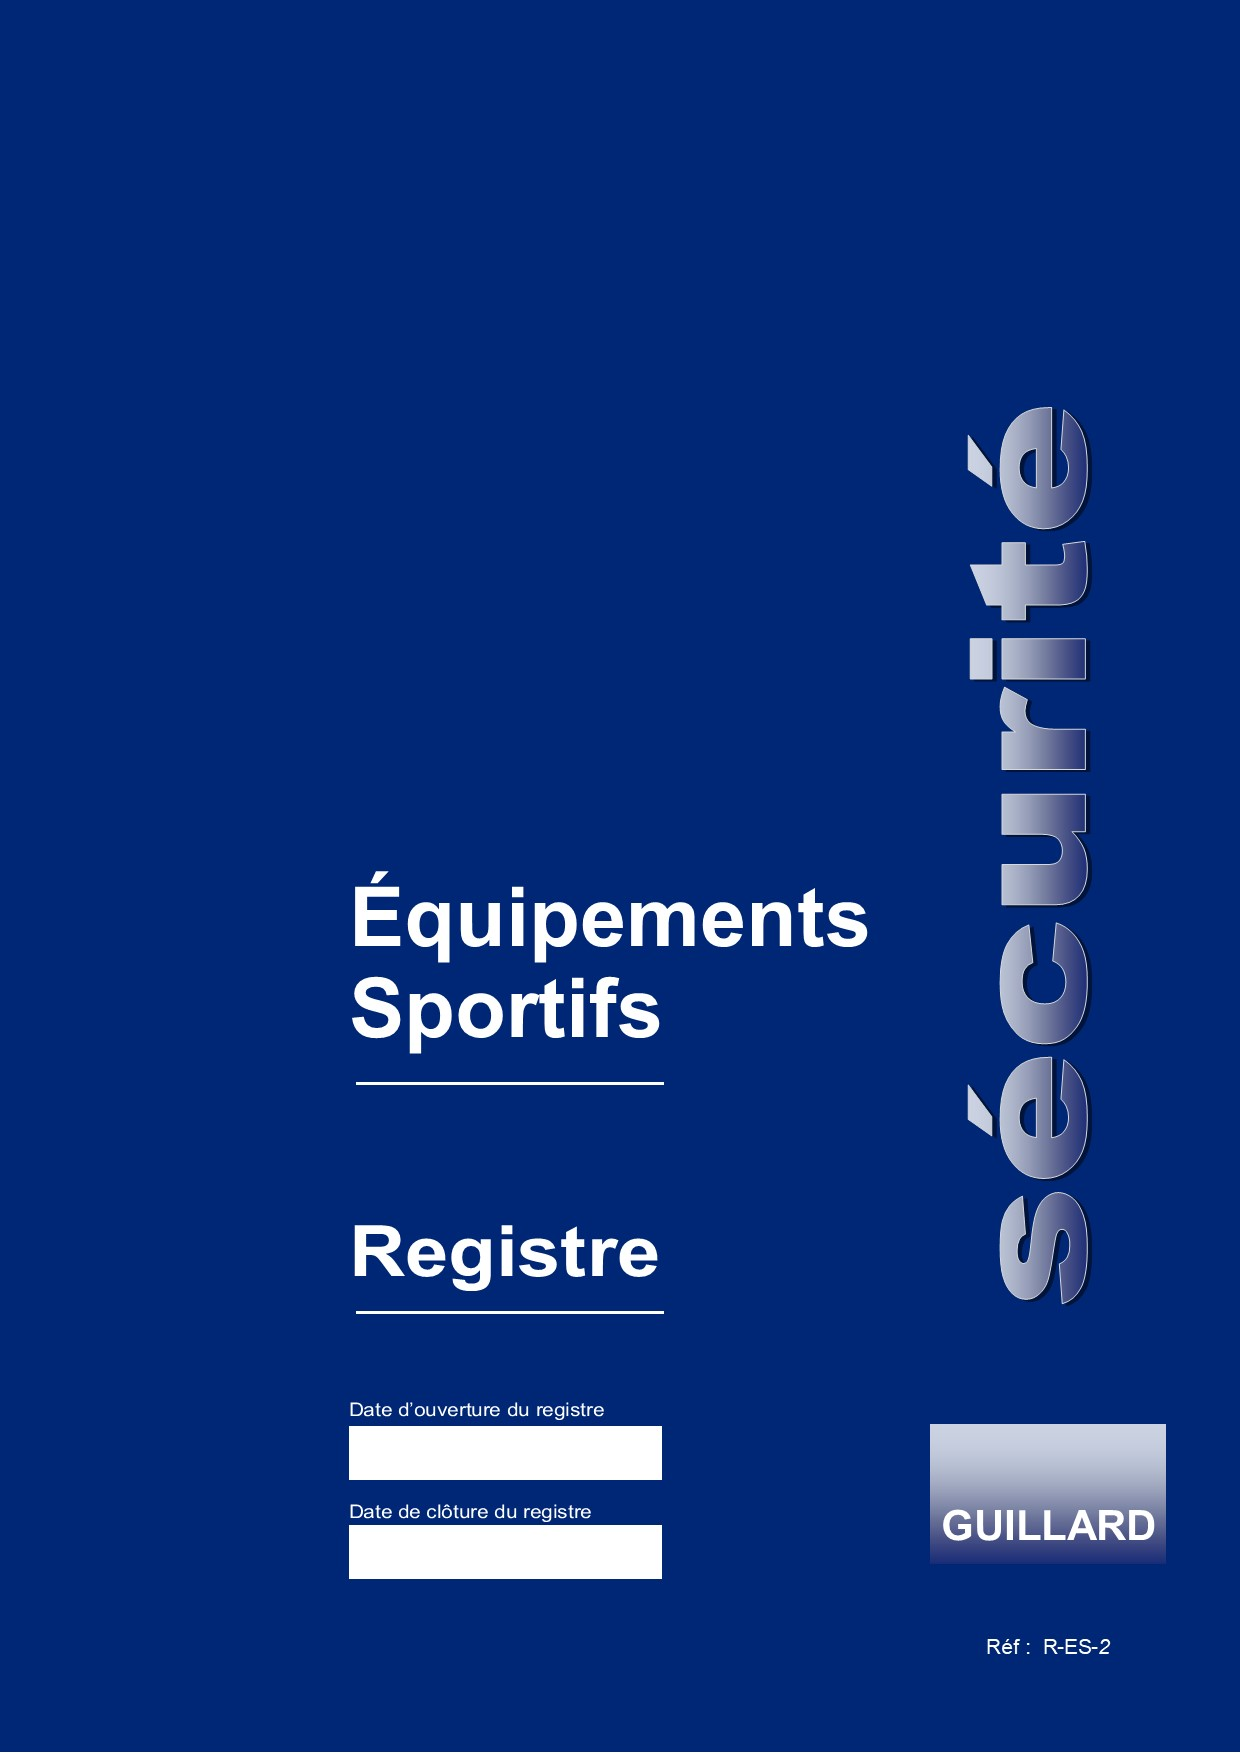 3a - Registre de sécurité pour buts de foot-ball, basket-ball,hand-ball,hockey, rugby, volley-ball - R.ES- Edition GUILLARD